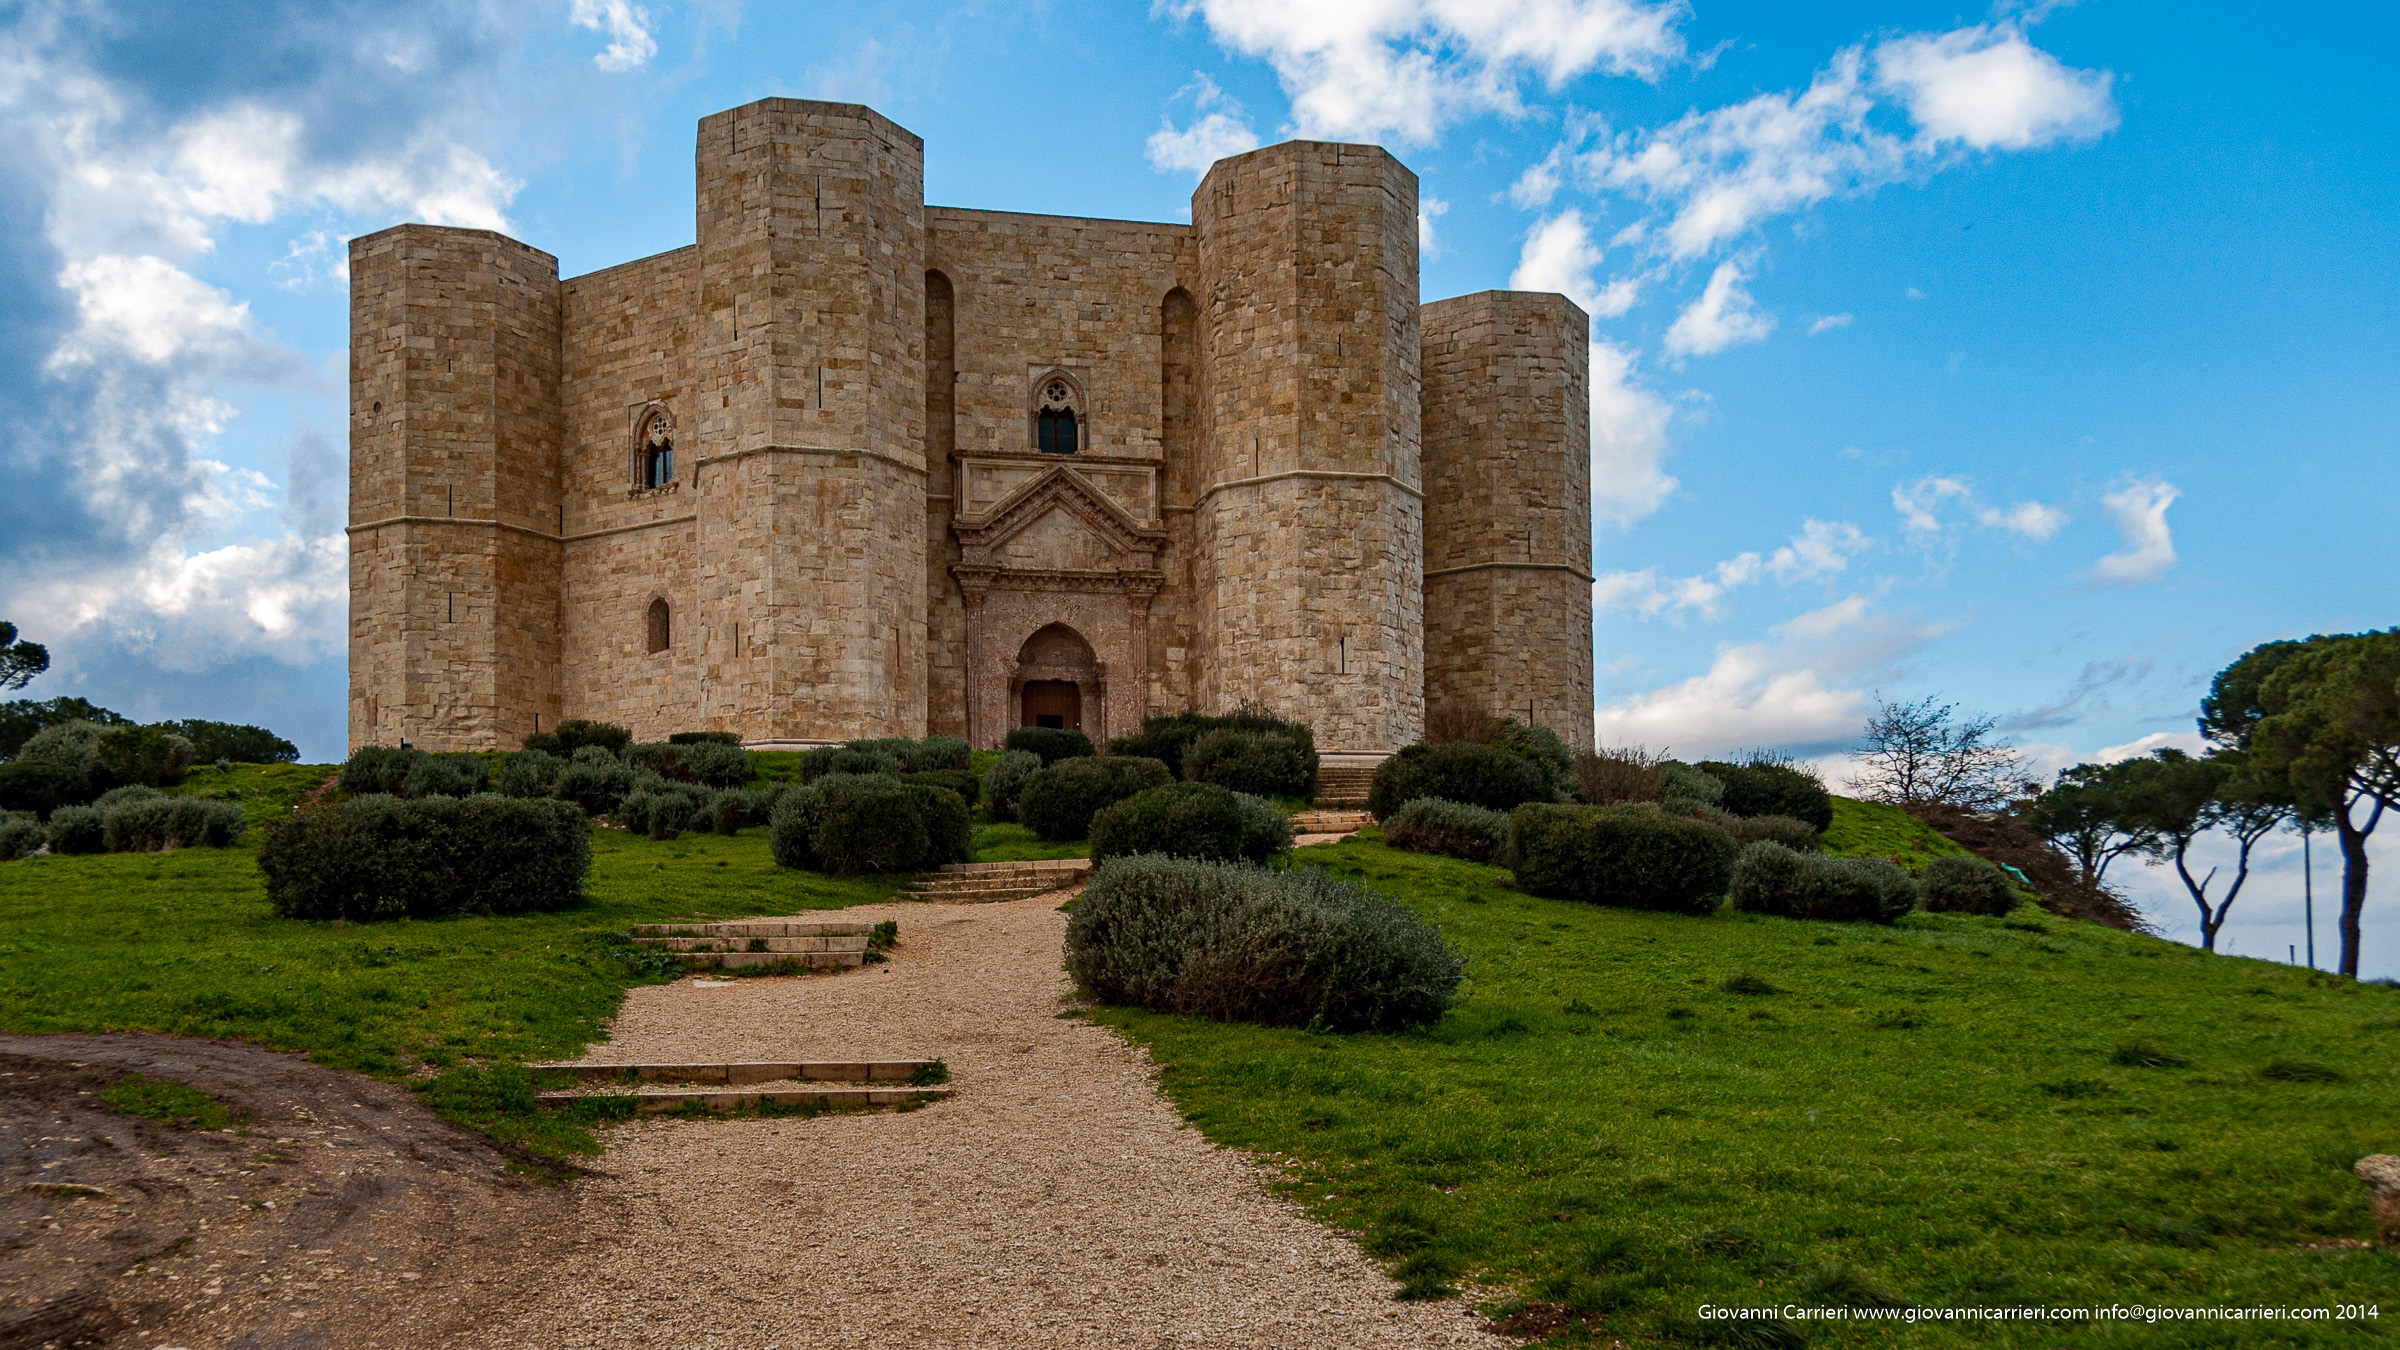 Photographs of Castel del Monte